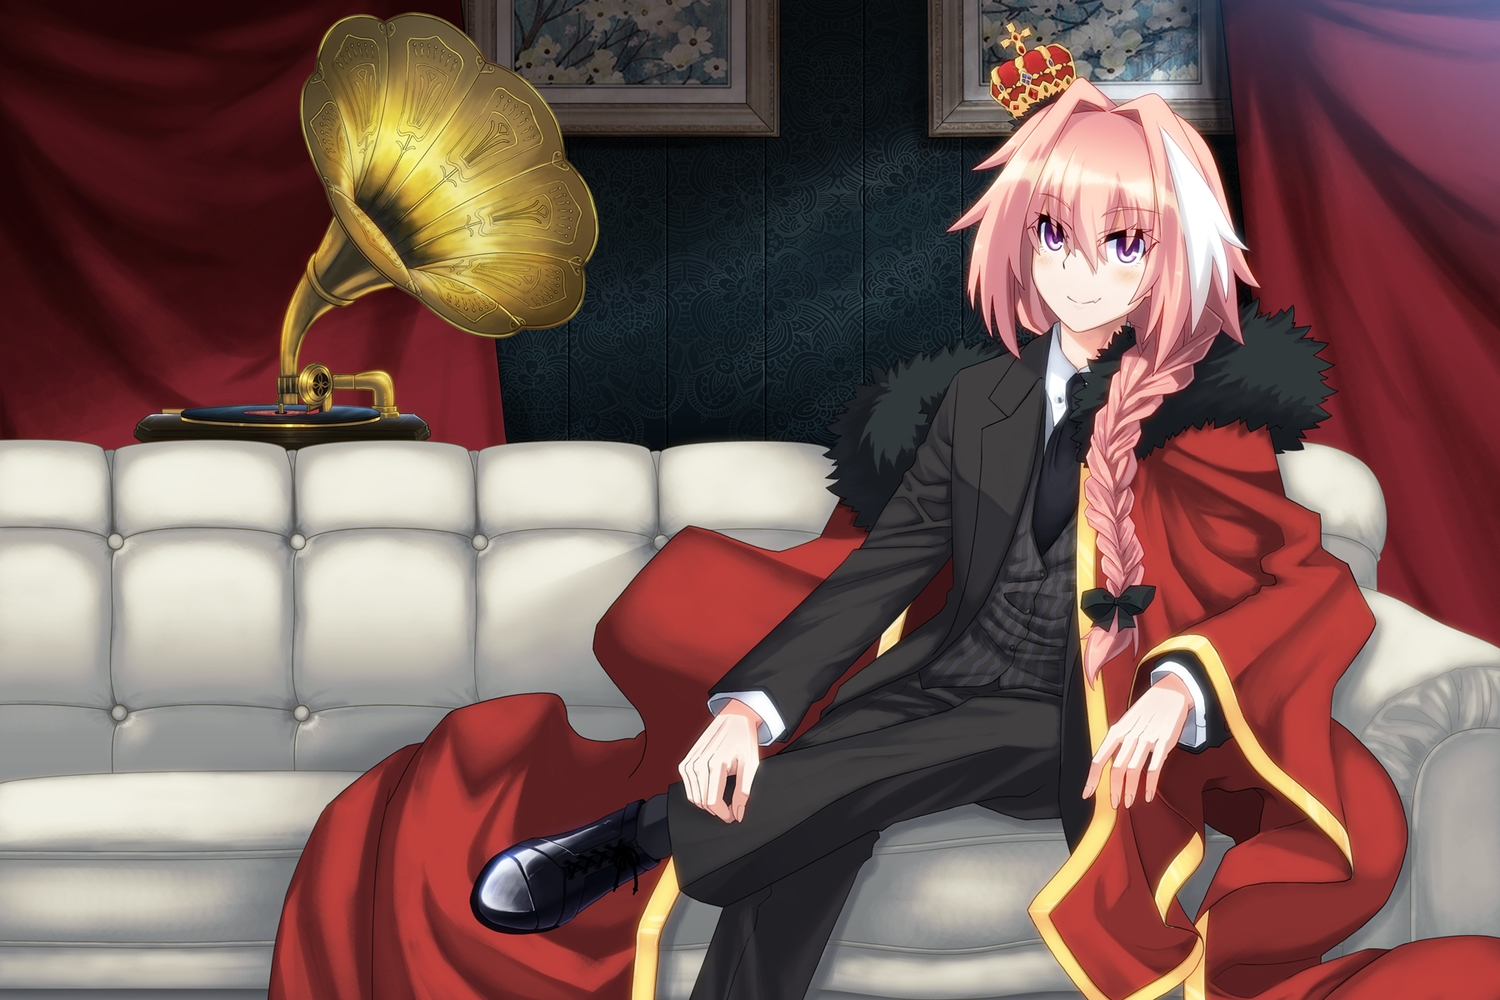 all_male astolfo braids couch crown fang fate/apocrypha fate/grand_order fate_(series) long_hair male pink_hair ponytail purple_eyes suit tie uiu